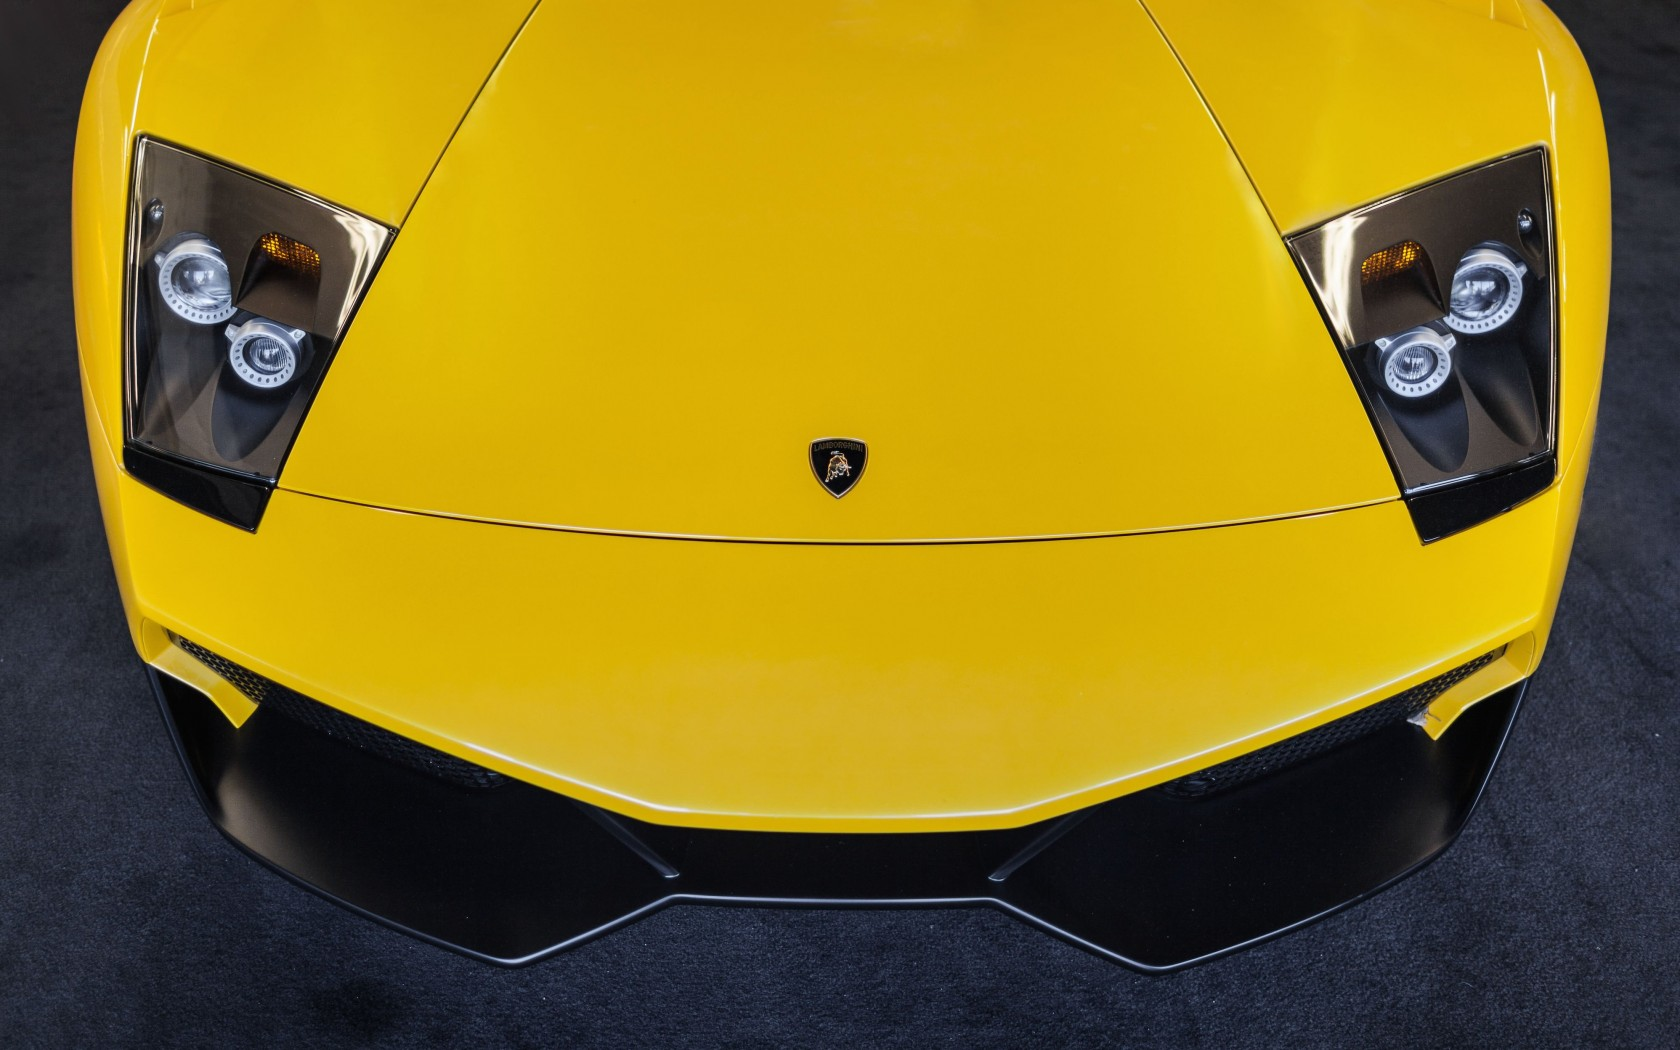 Lamborghini Murcielago LP670 Front Wallpaper for Desktop 1680x1050